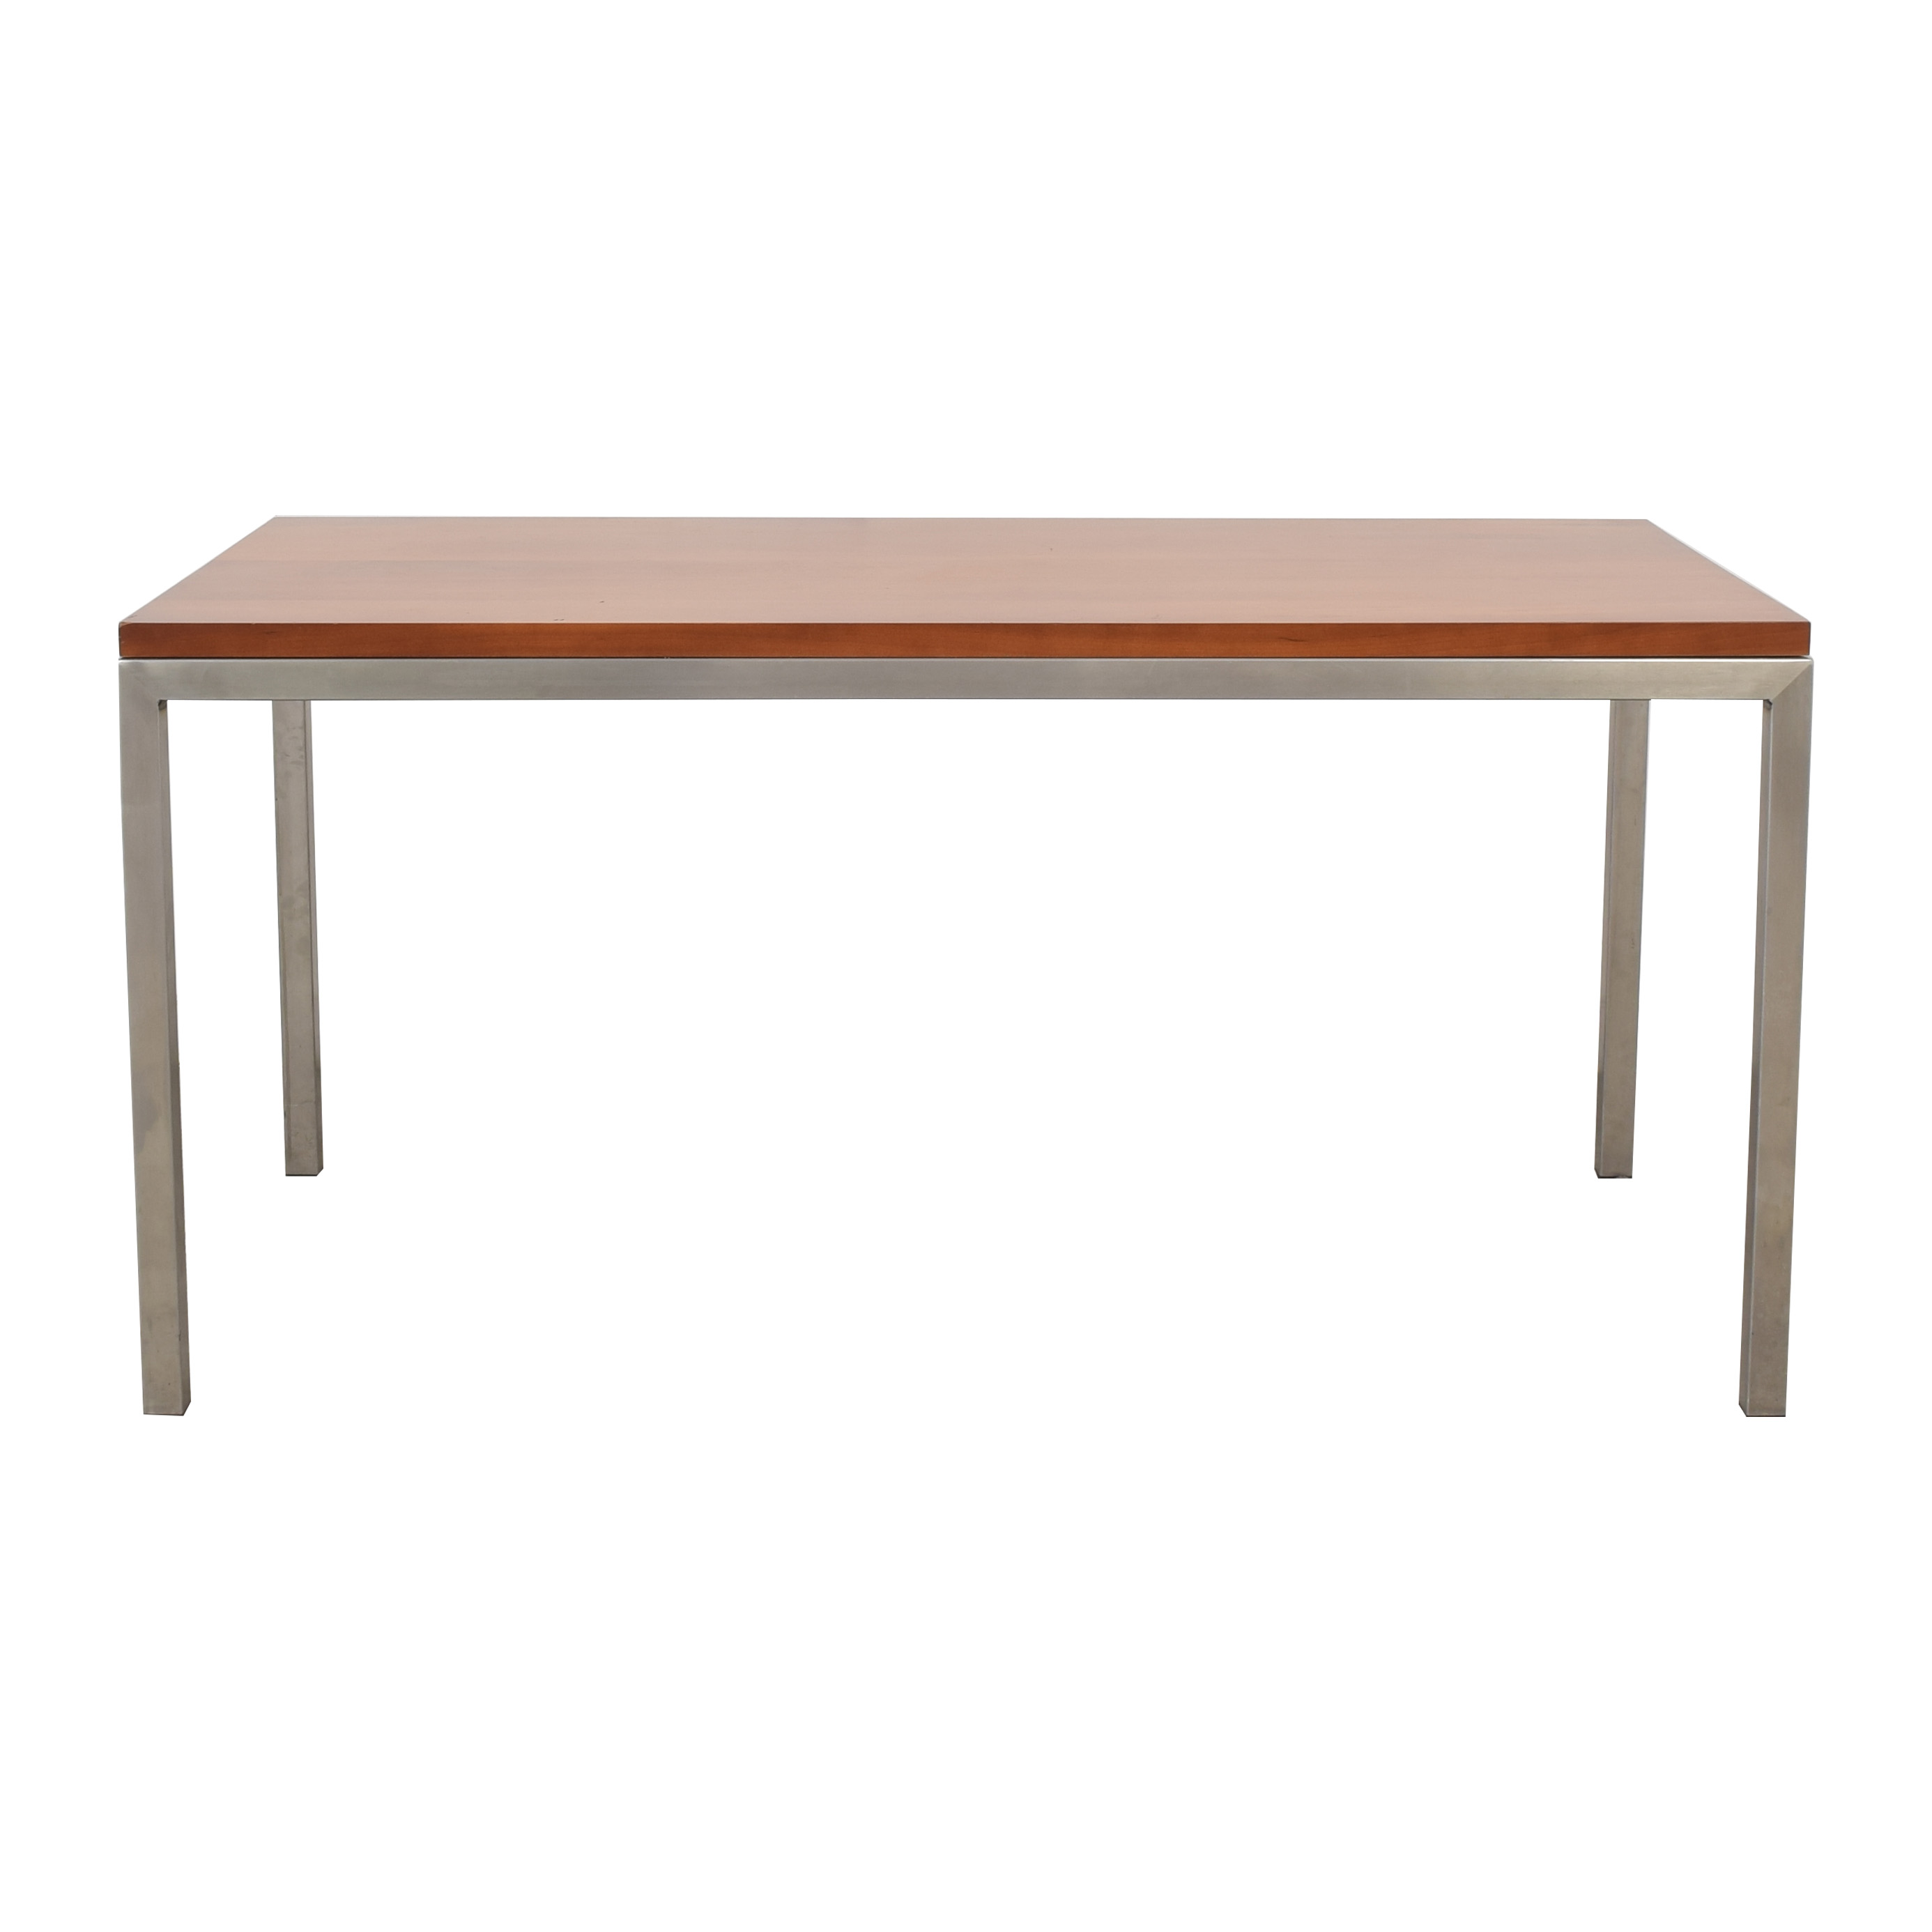 Room & Board Room & Board Rand Dining Table dimensions